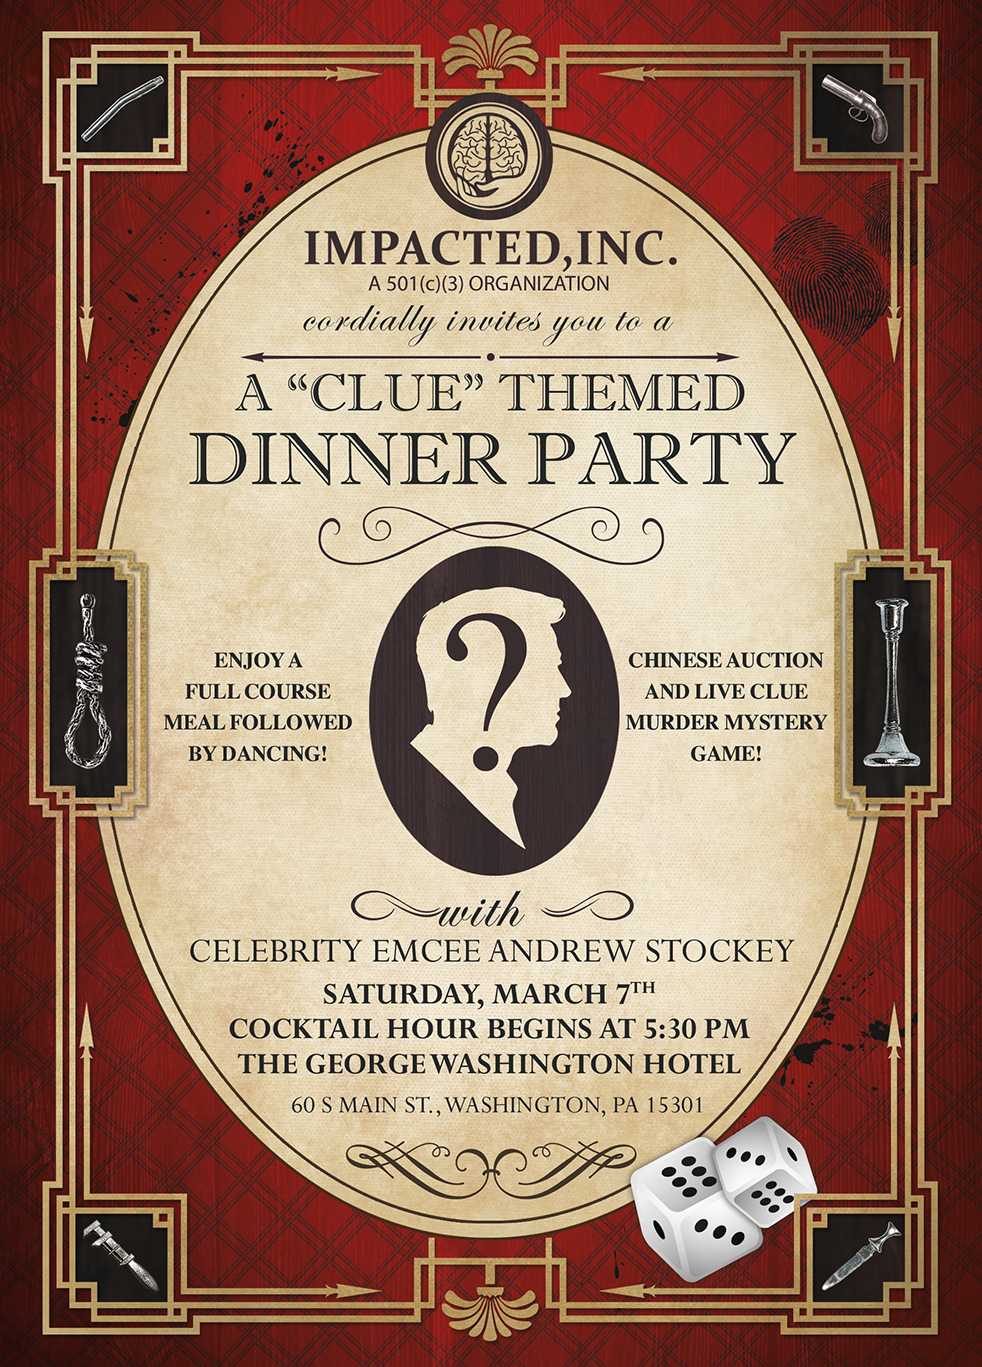 2020 Impacted, Inc. Gala Invite